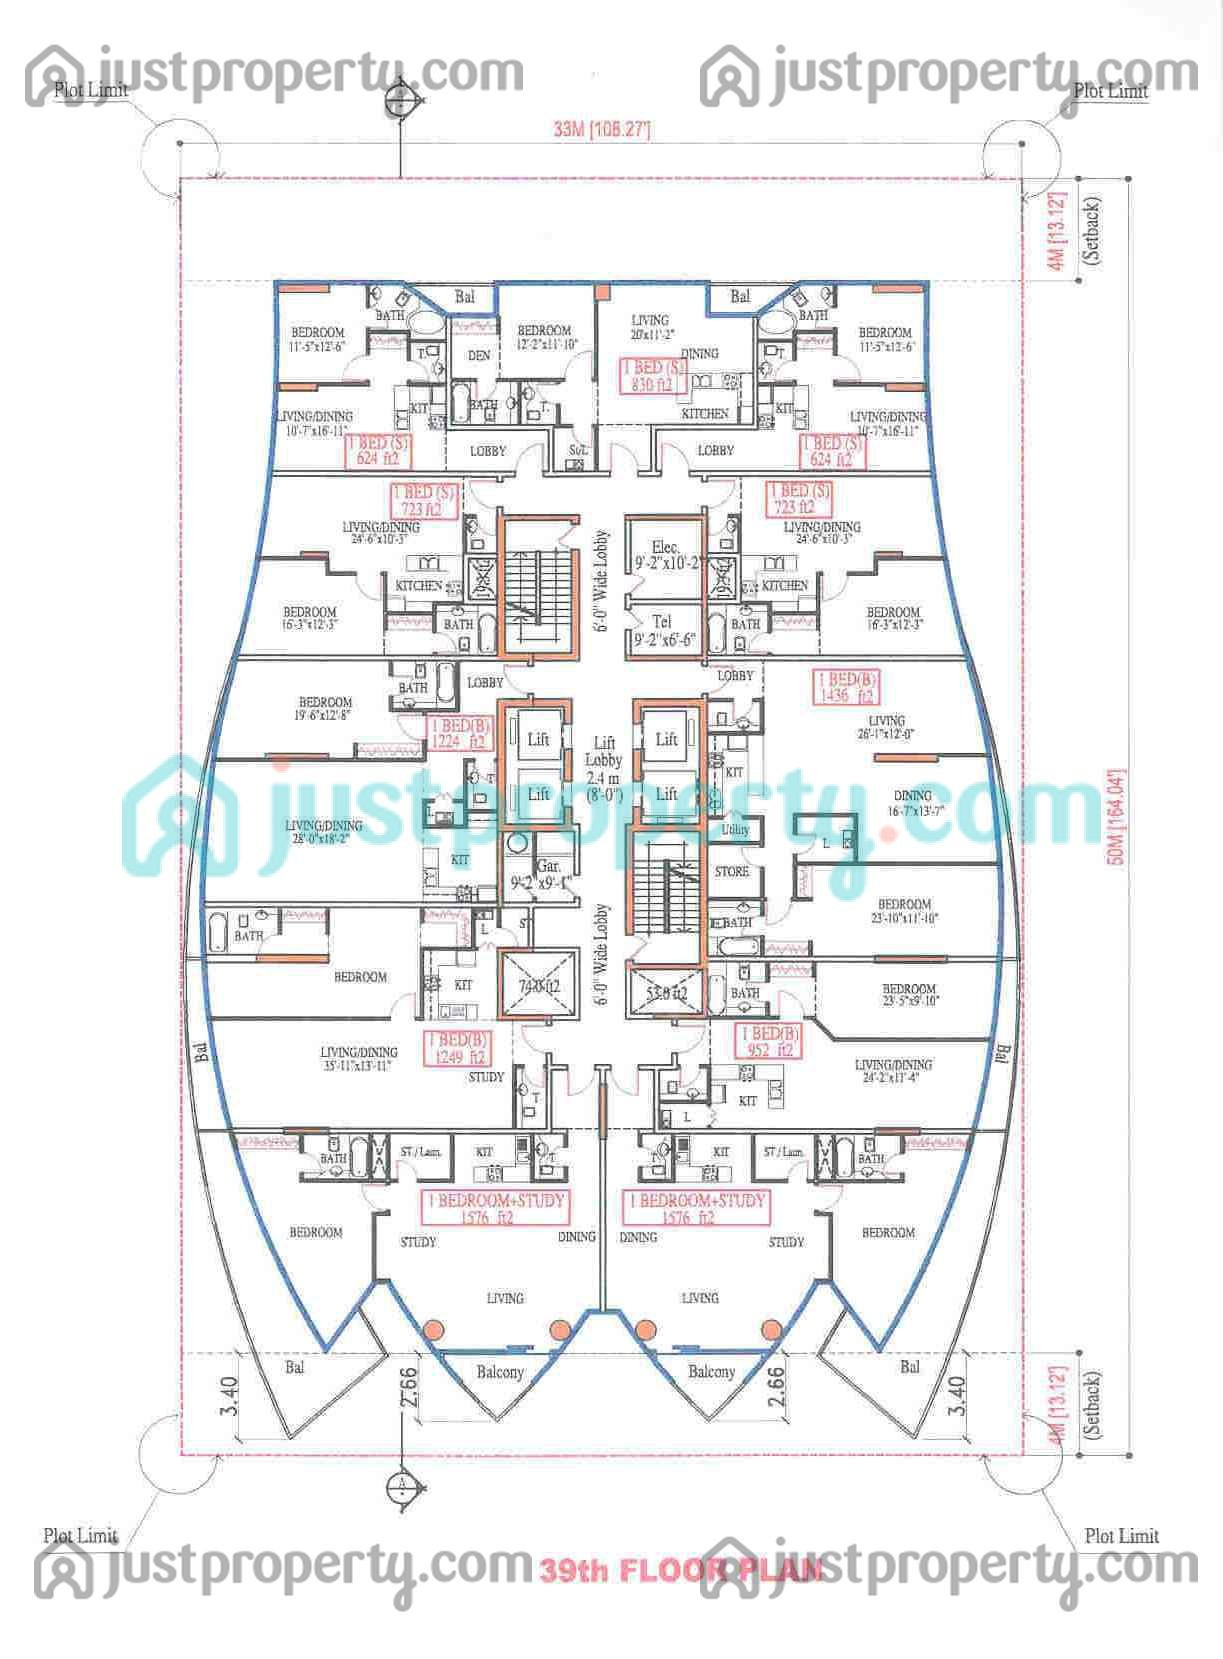 Concorde Tower Master Plans Floor Plans Justproperty Com